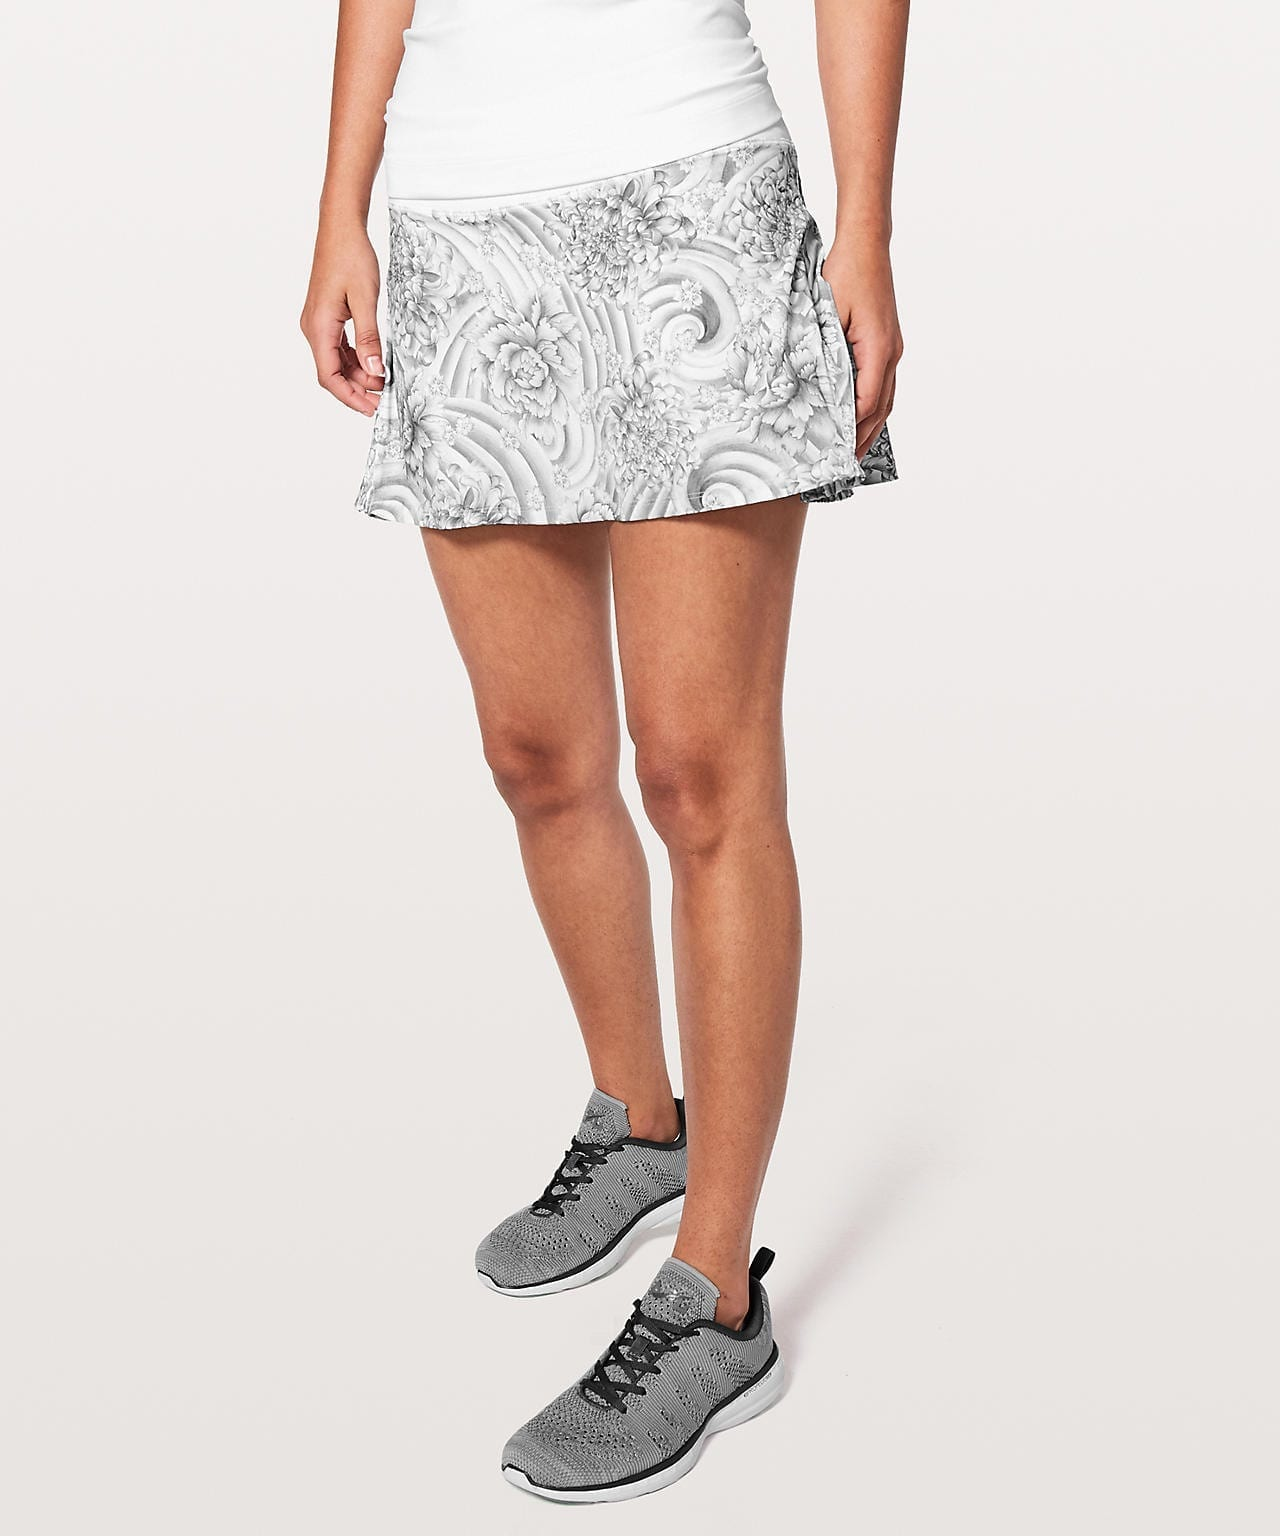 Play Off The Pleats Skirt Mini Twine White Multi